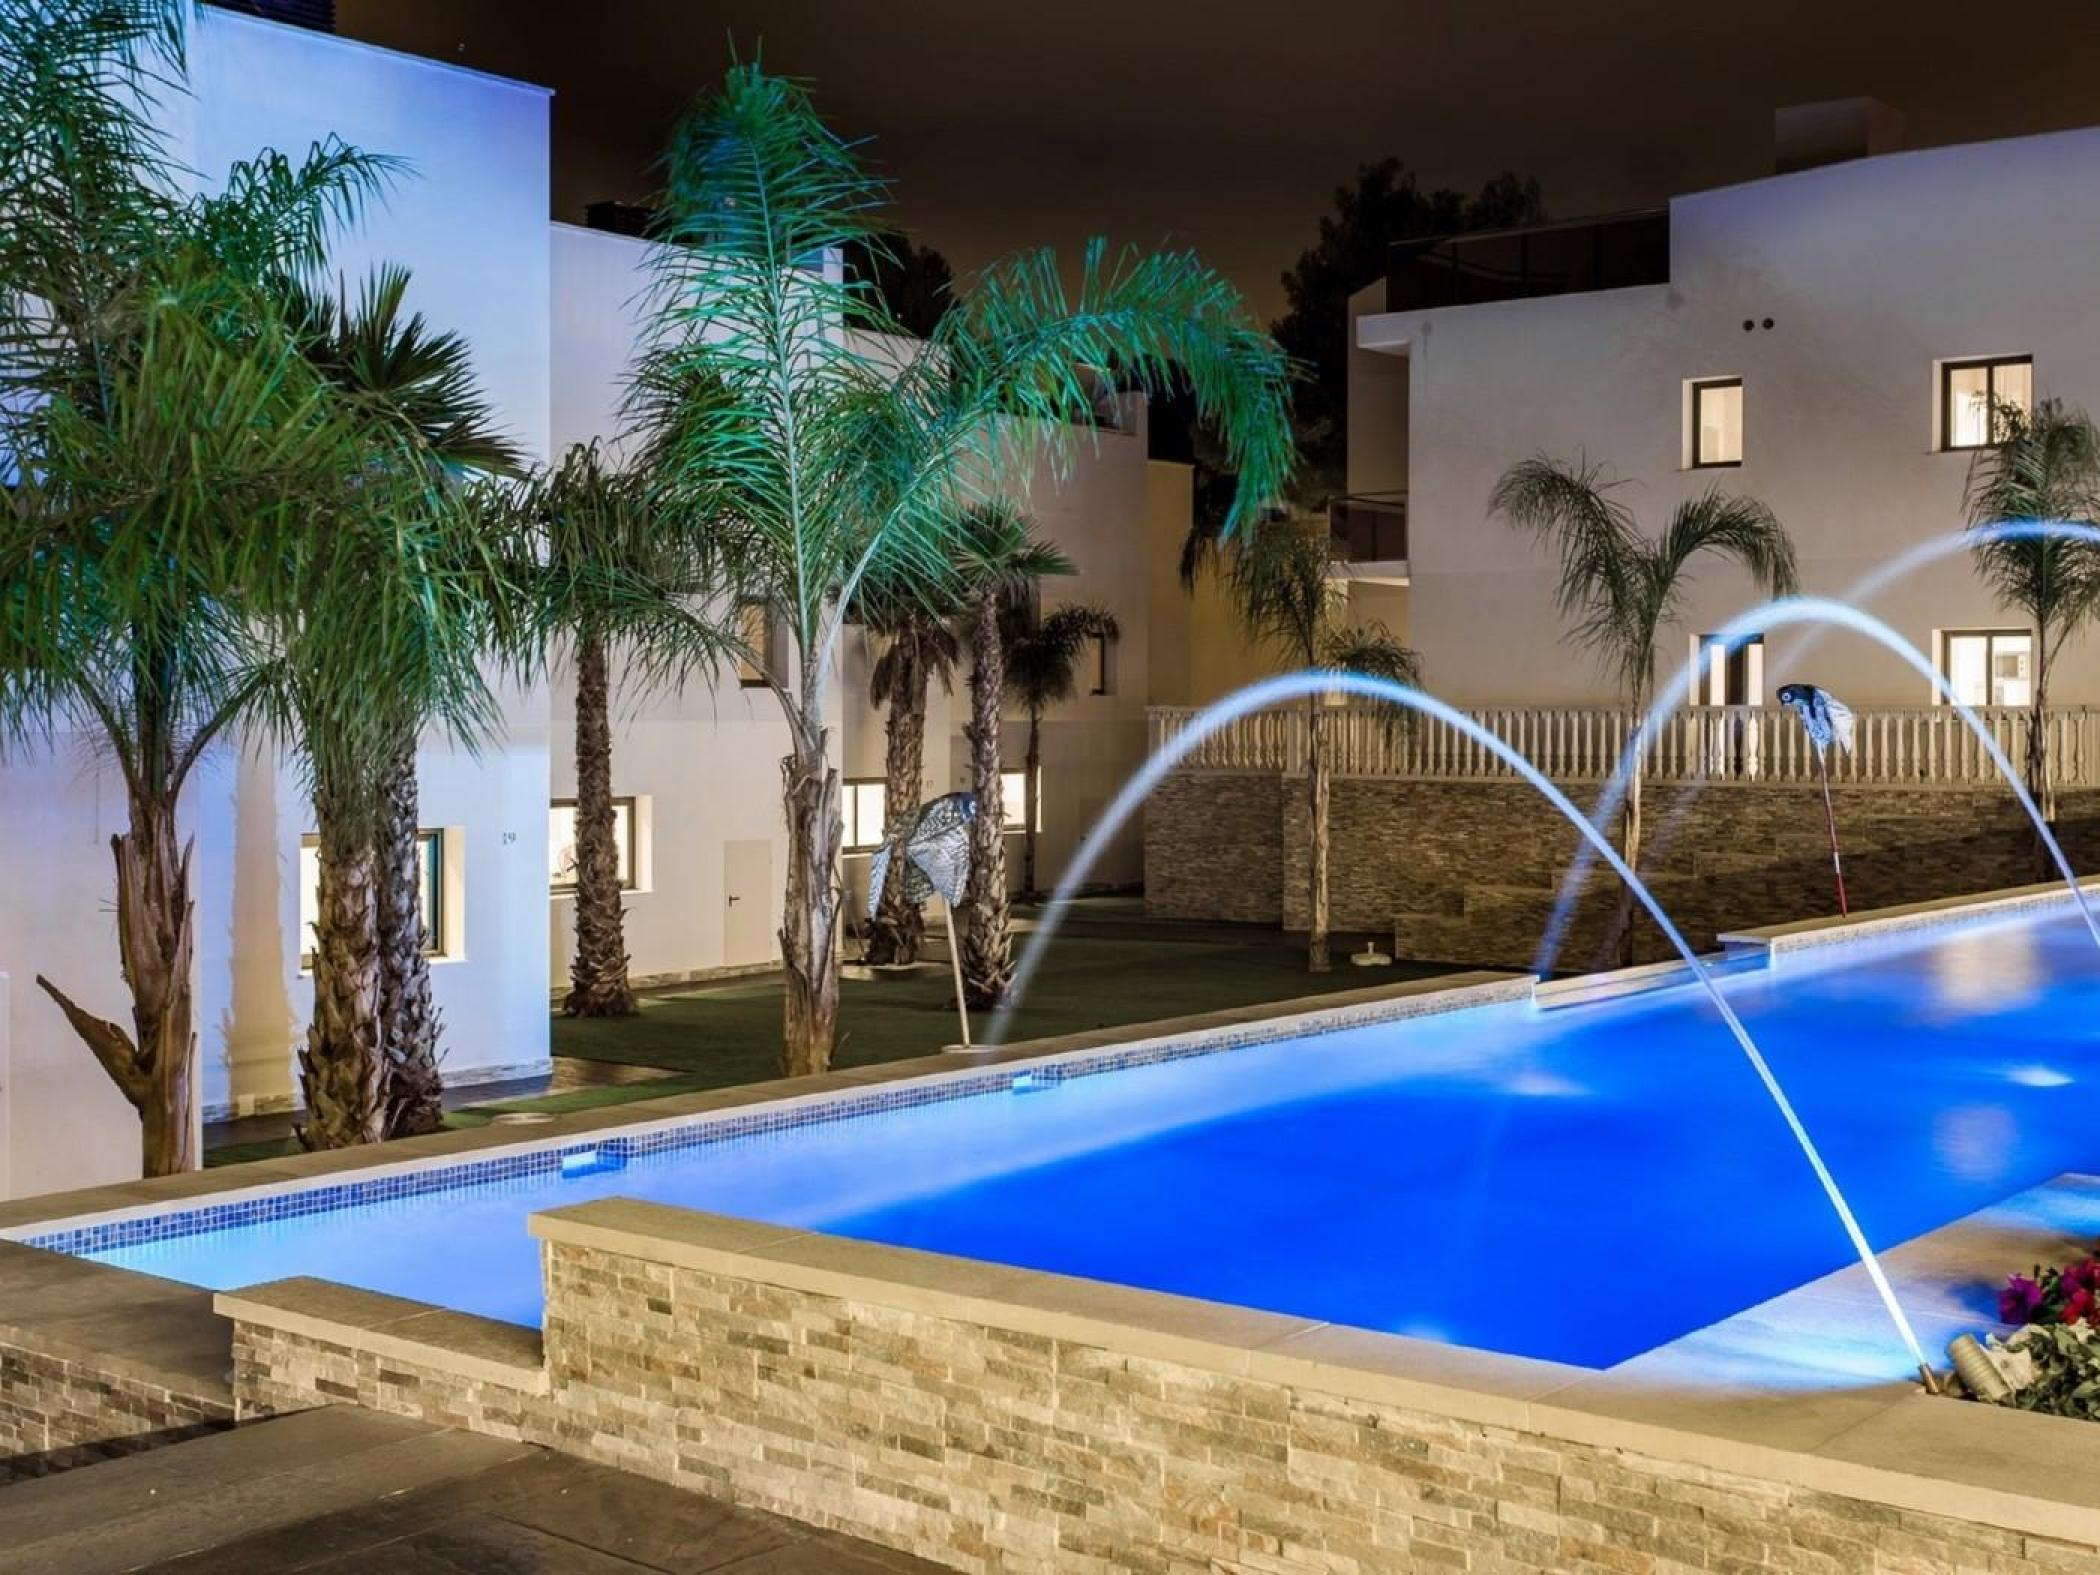 Rent Villa with Swimming pool in Platja d'Aro - Girorooms Travel Calma Holiday Villas jacuzzi 11 - 31